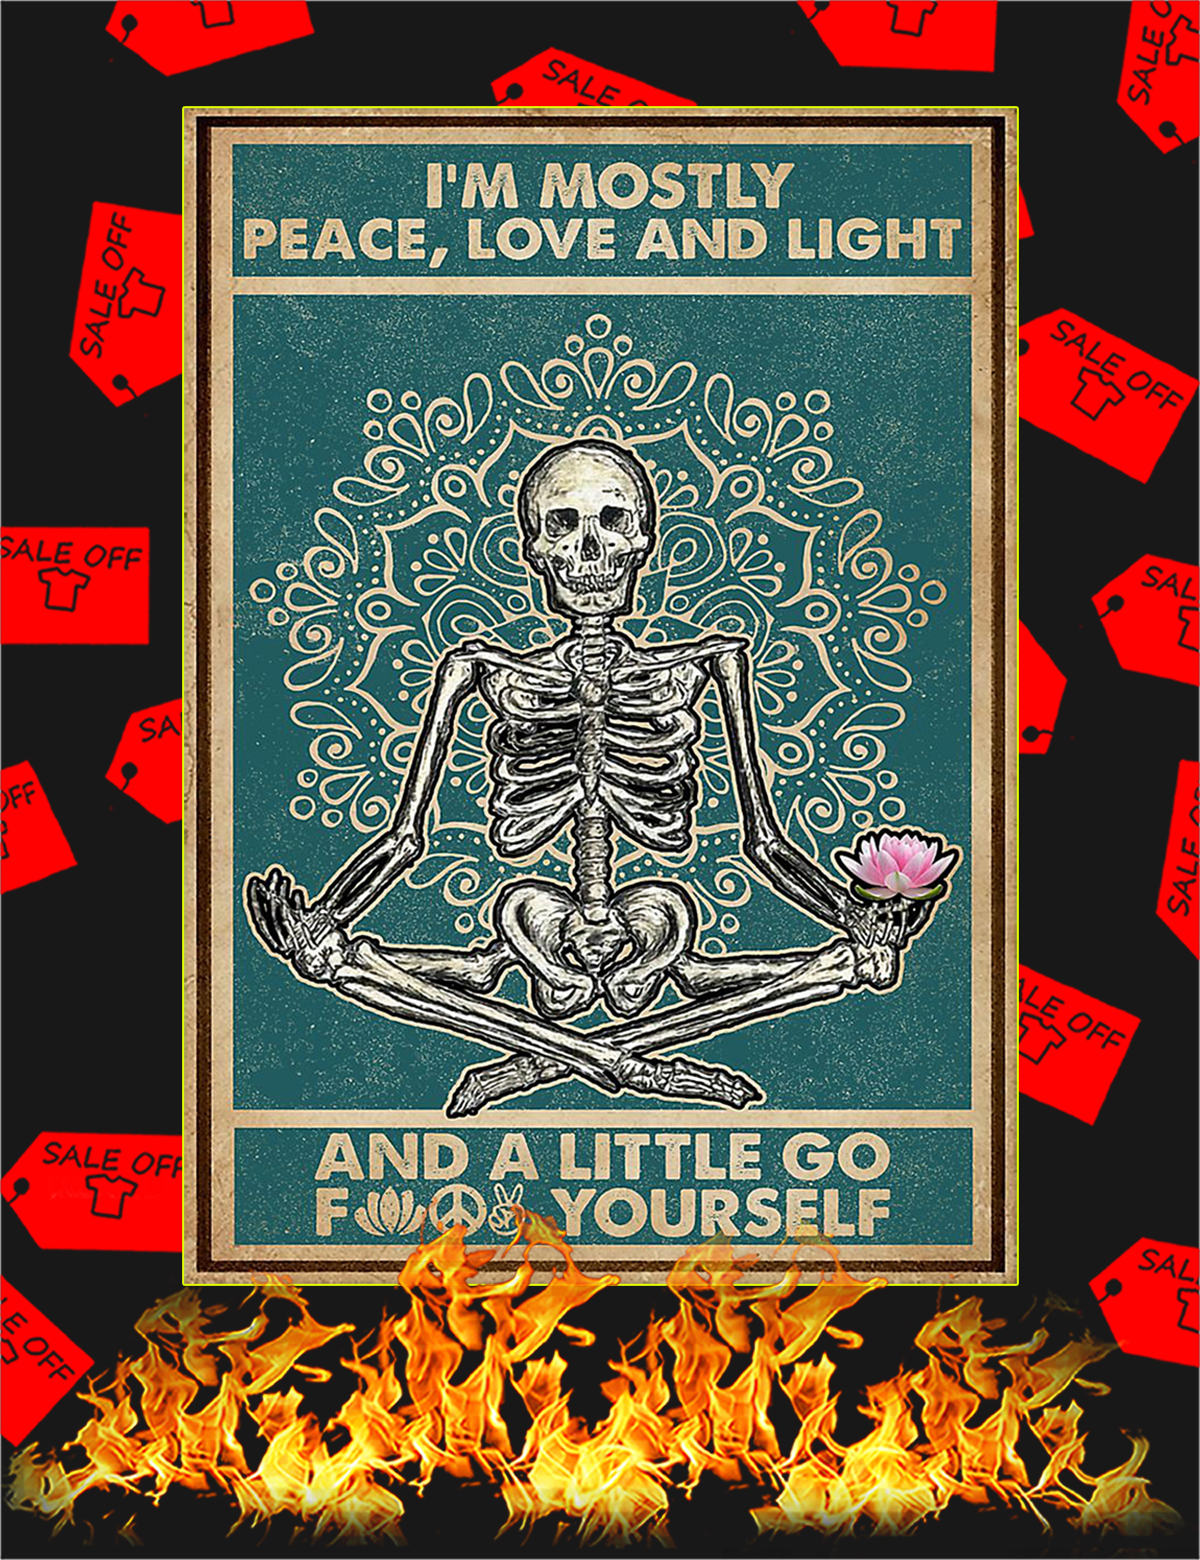 Skeleton yoga I'm mostly peace love and light poster - A1